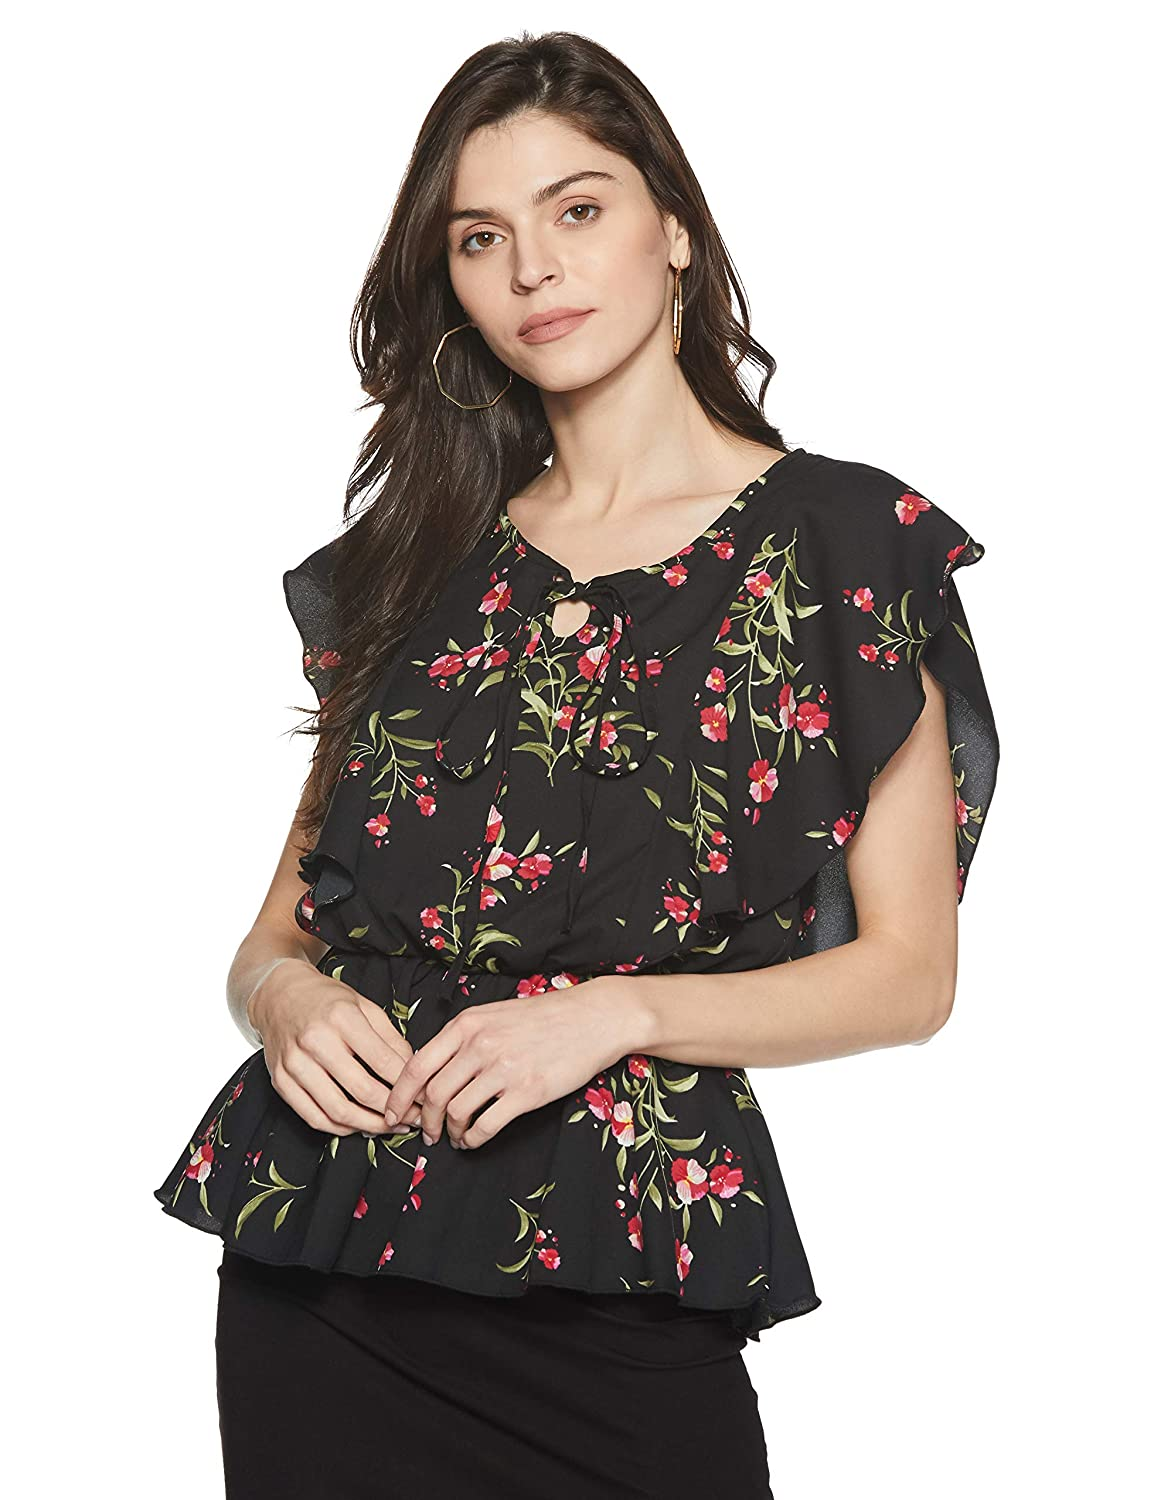 Get 50% Off on Stalk Buy Love Women's Georgette Julia Ruffle Top - Free Delivery